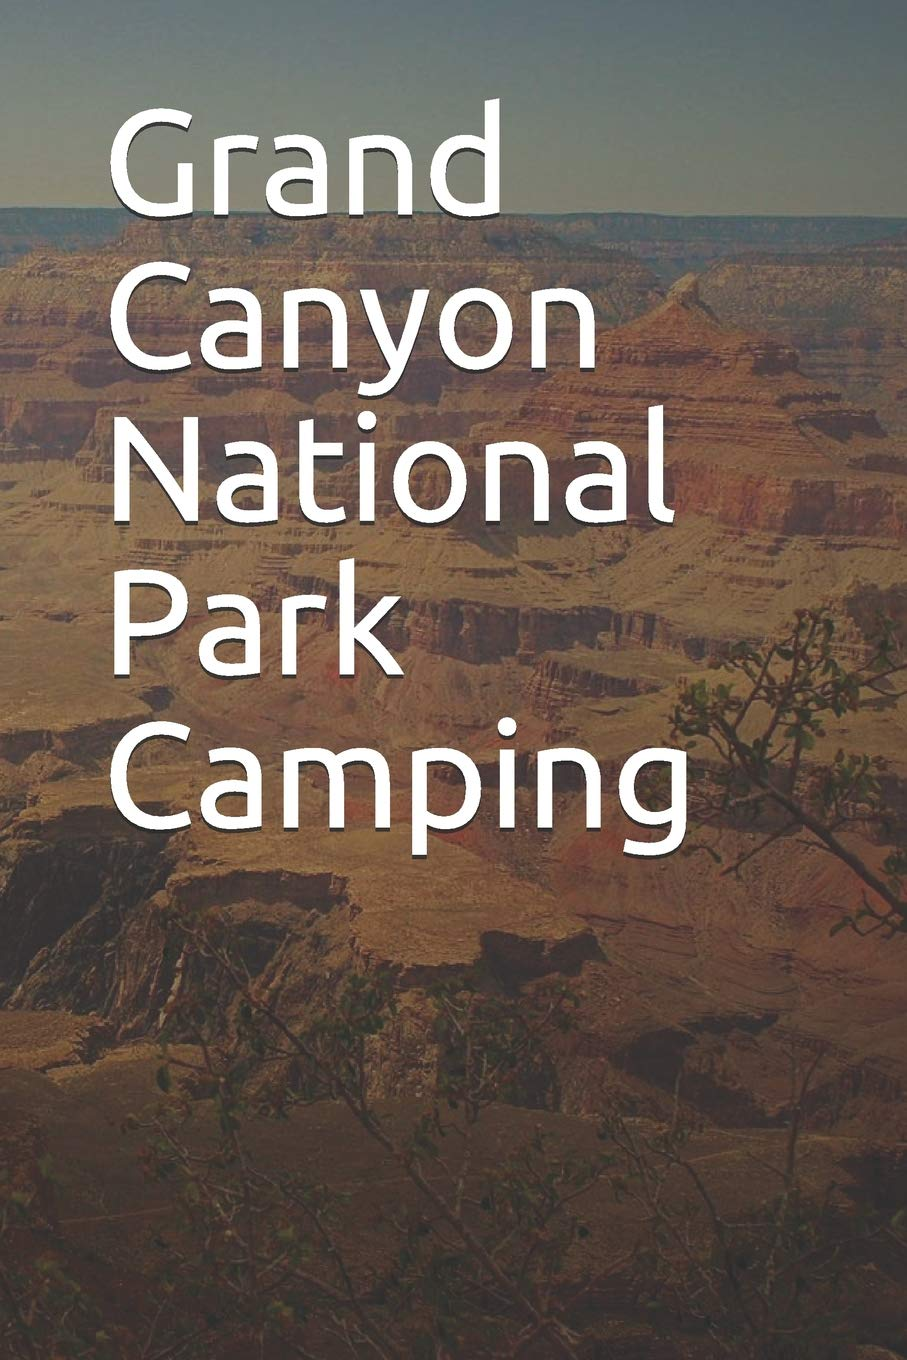 Grand Canyon National Park Camping Blank Lined Journal For